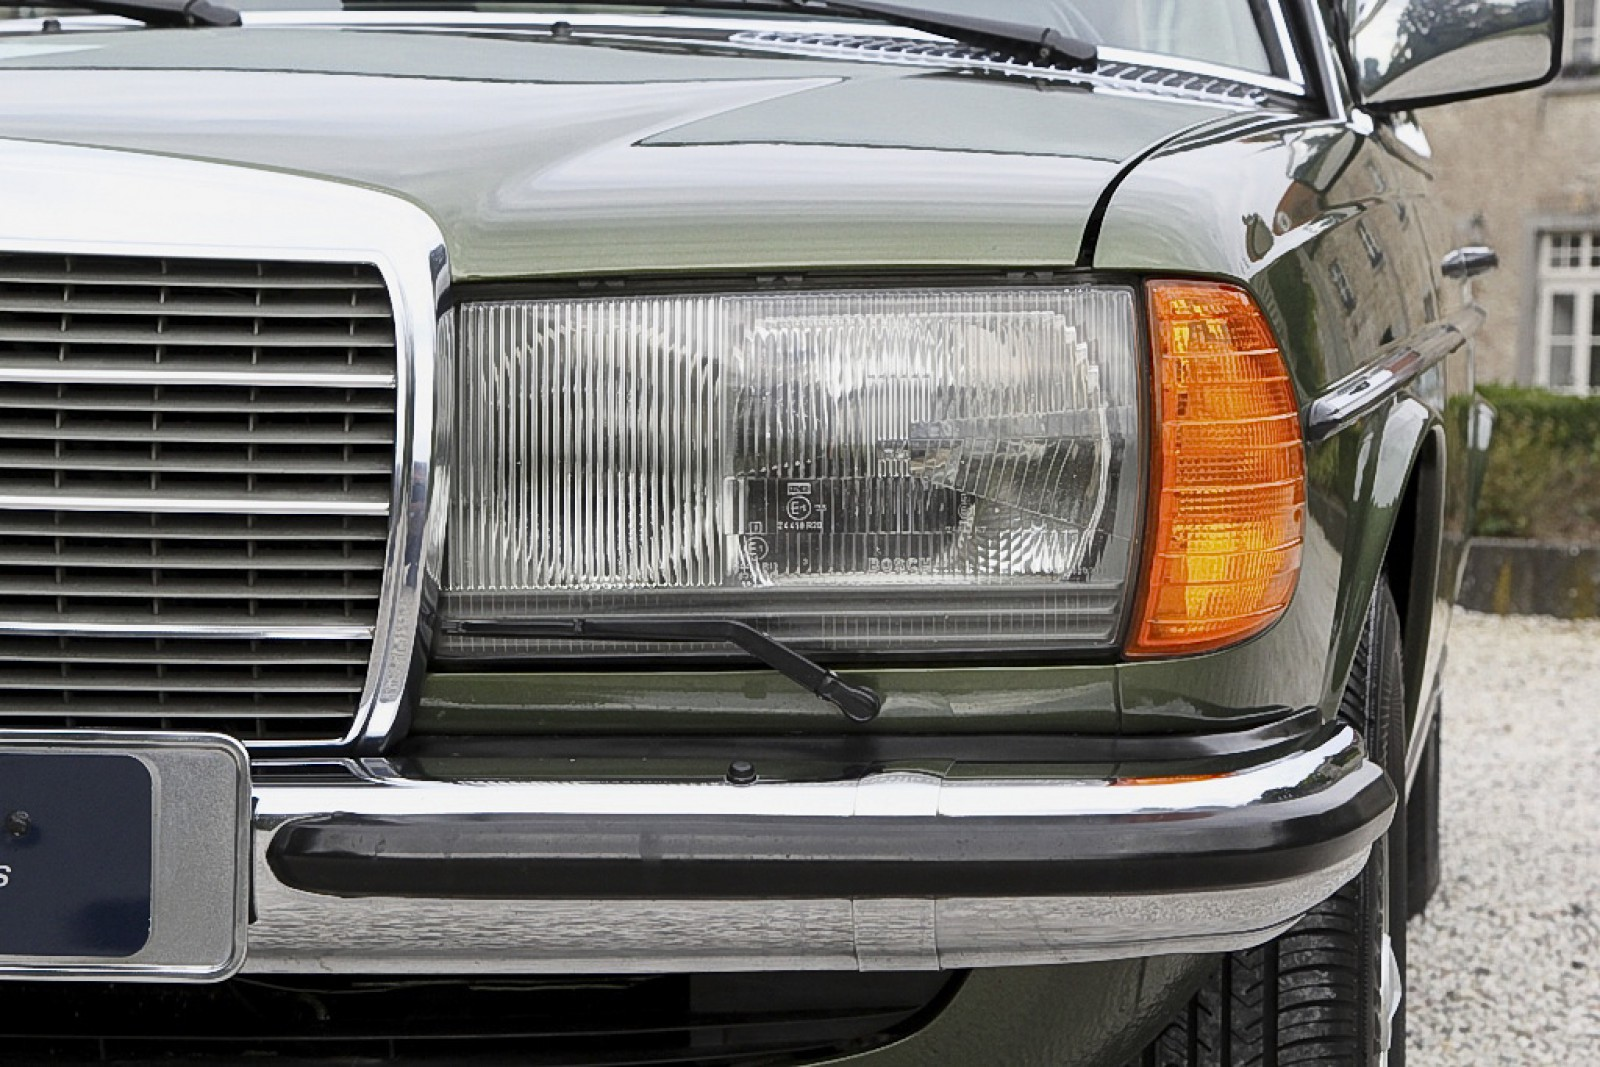 Mercedes W123 Interieur Te Koop Classic Cars Drive To Invest